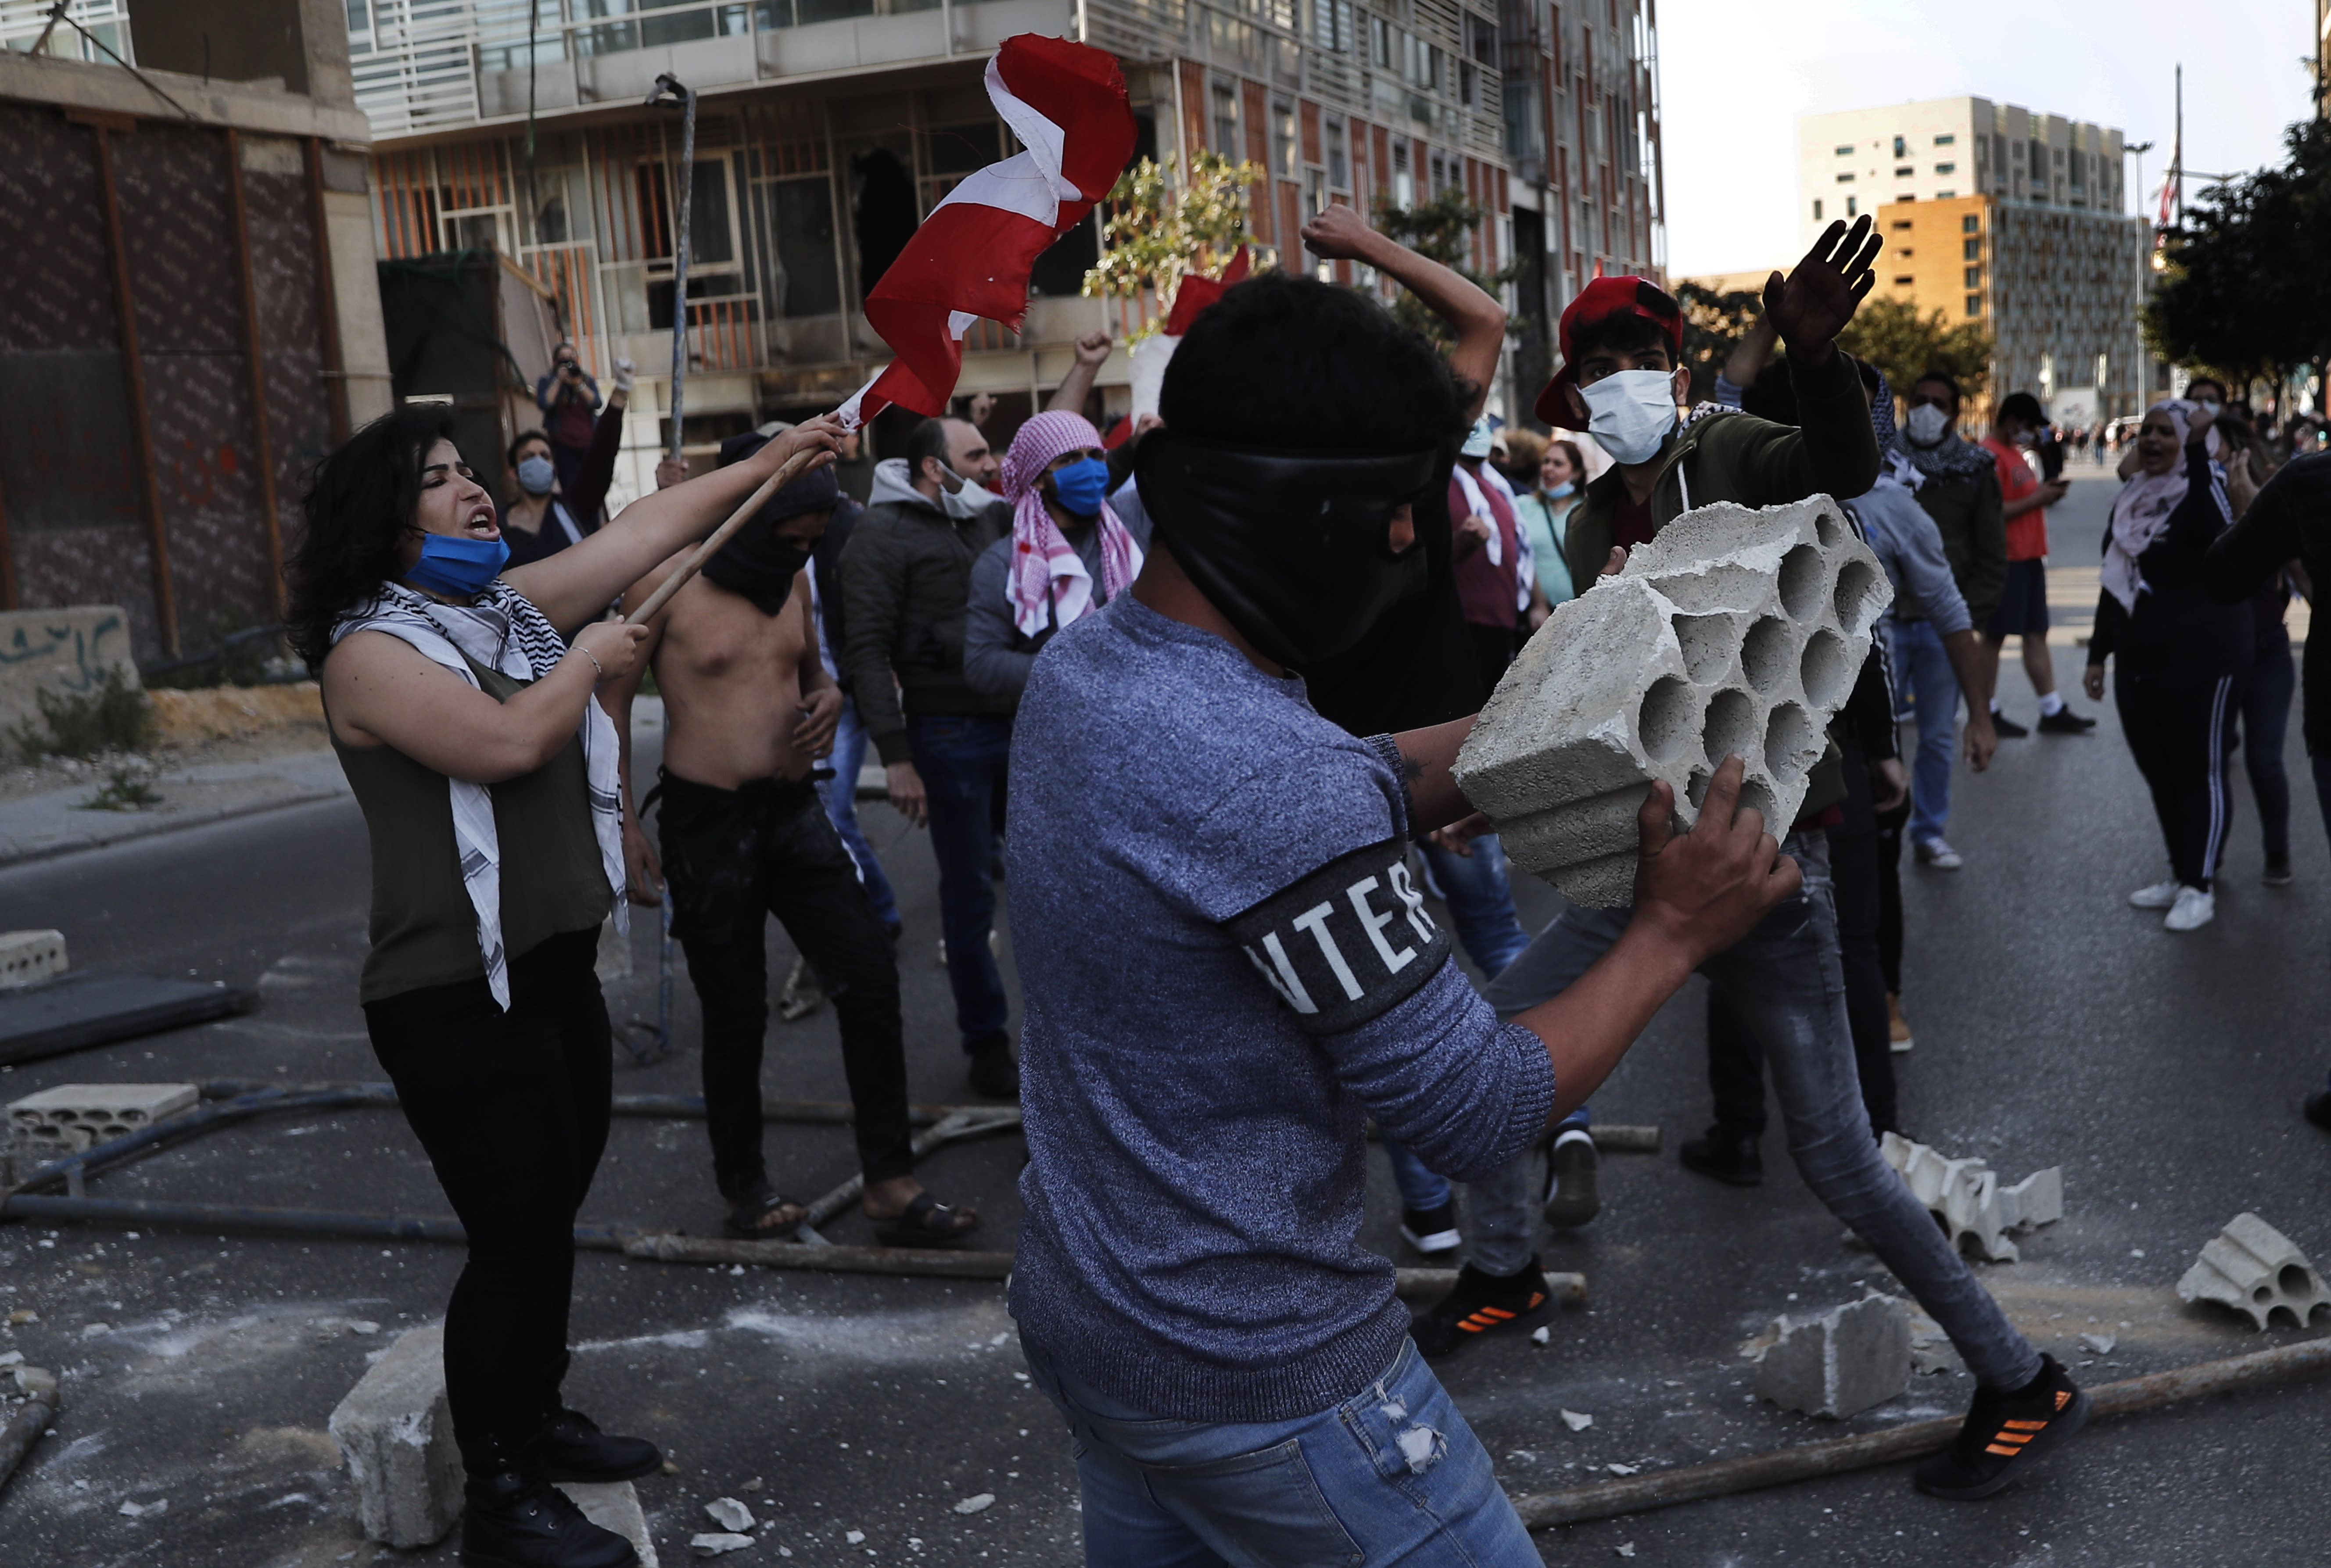 Lebanon: army-demonstrators clash in several cities